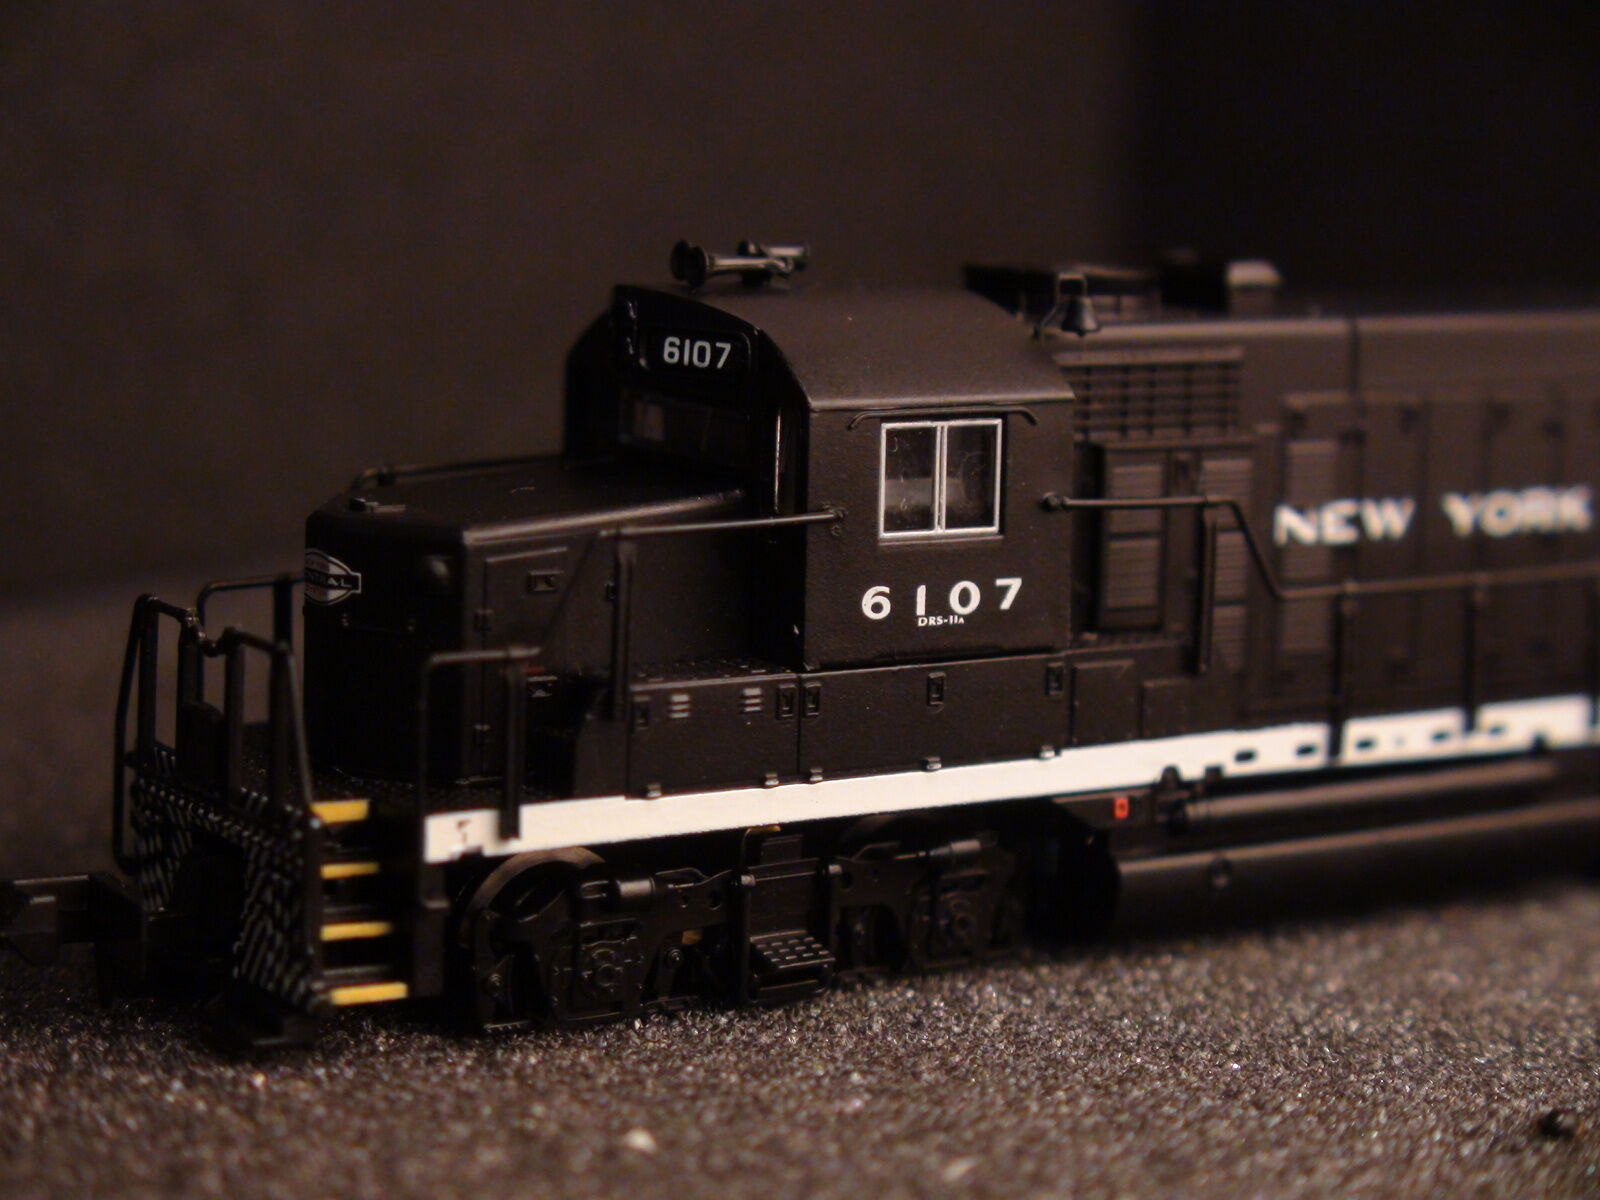 N-SCALE LIFE-LIKE 7092 GP-20 NEW YORK CENTRAL NYC  6109 BIGDISCOUNTTRAINS